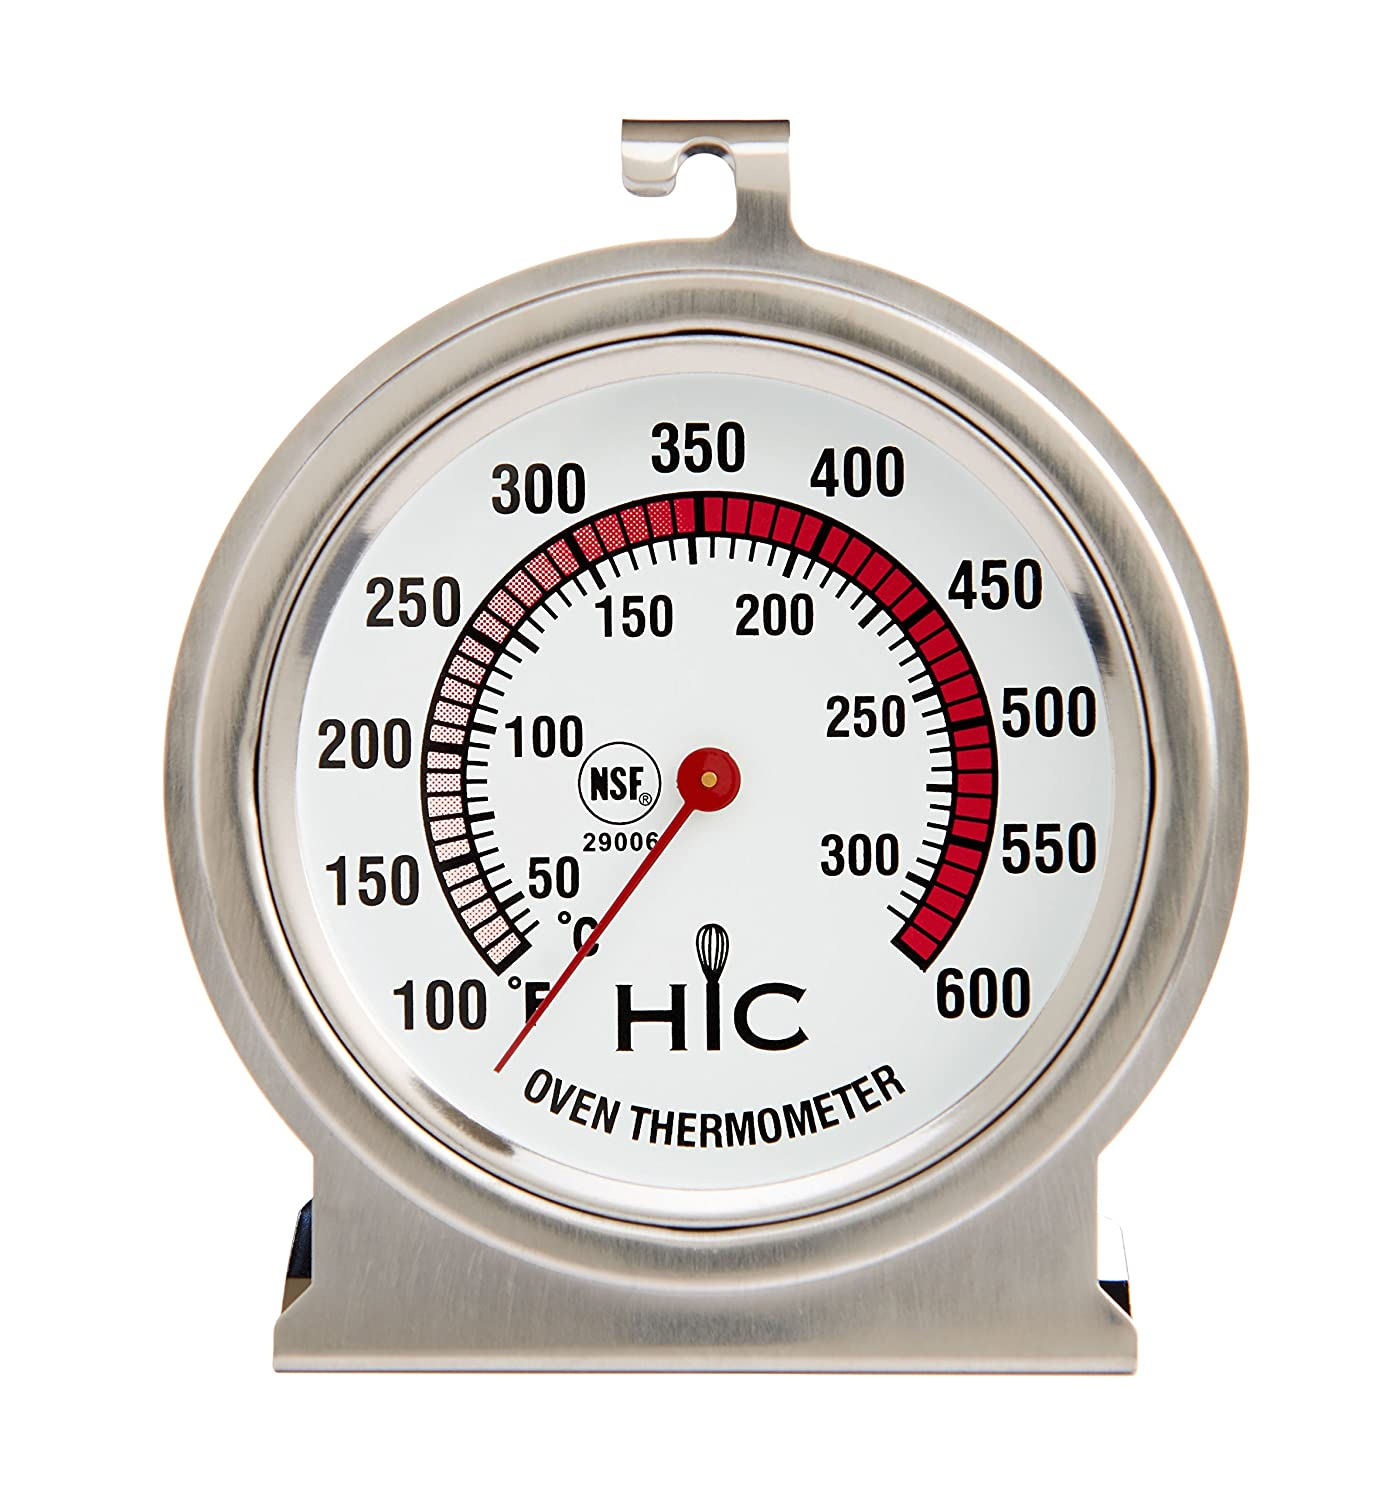 HIC Harold Import 29006 HIC Roasting Oven Thermometer, Large 2.5-Inch Easy-Read Face, Stainless Steel